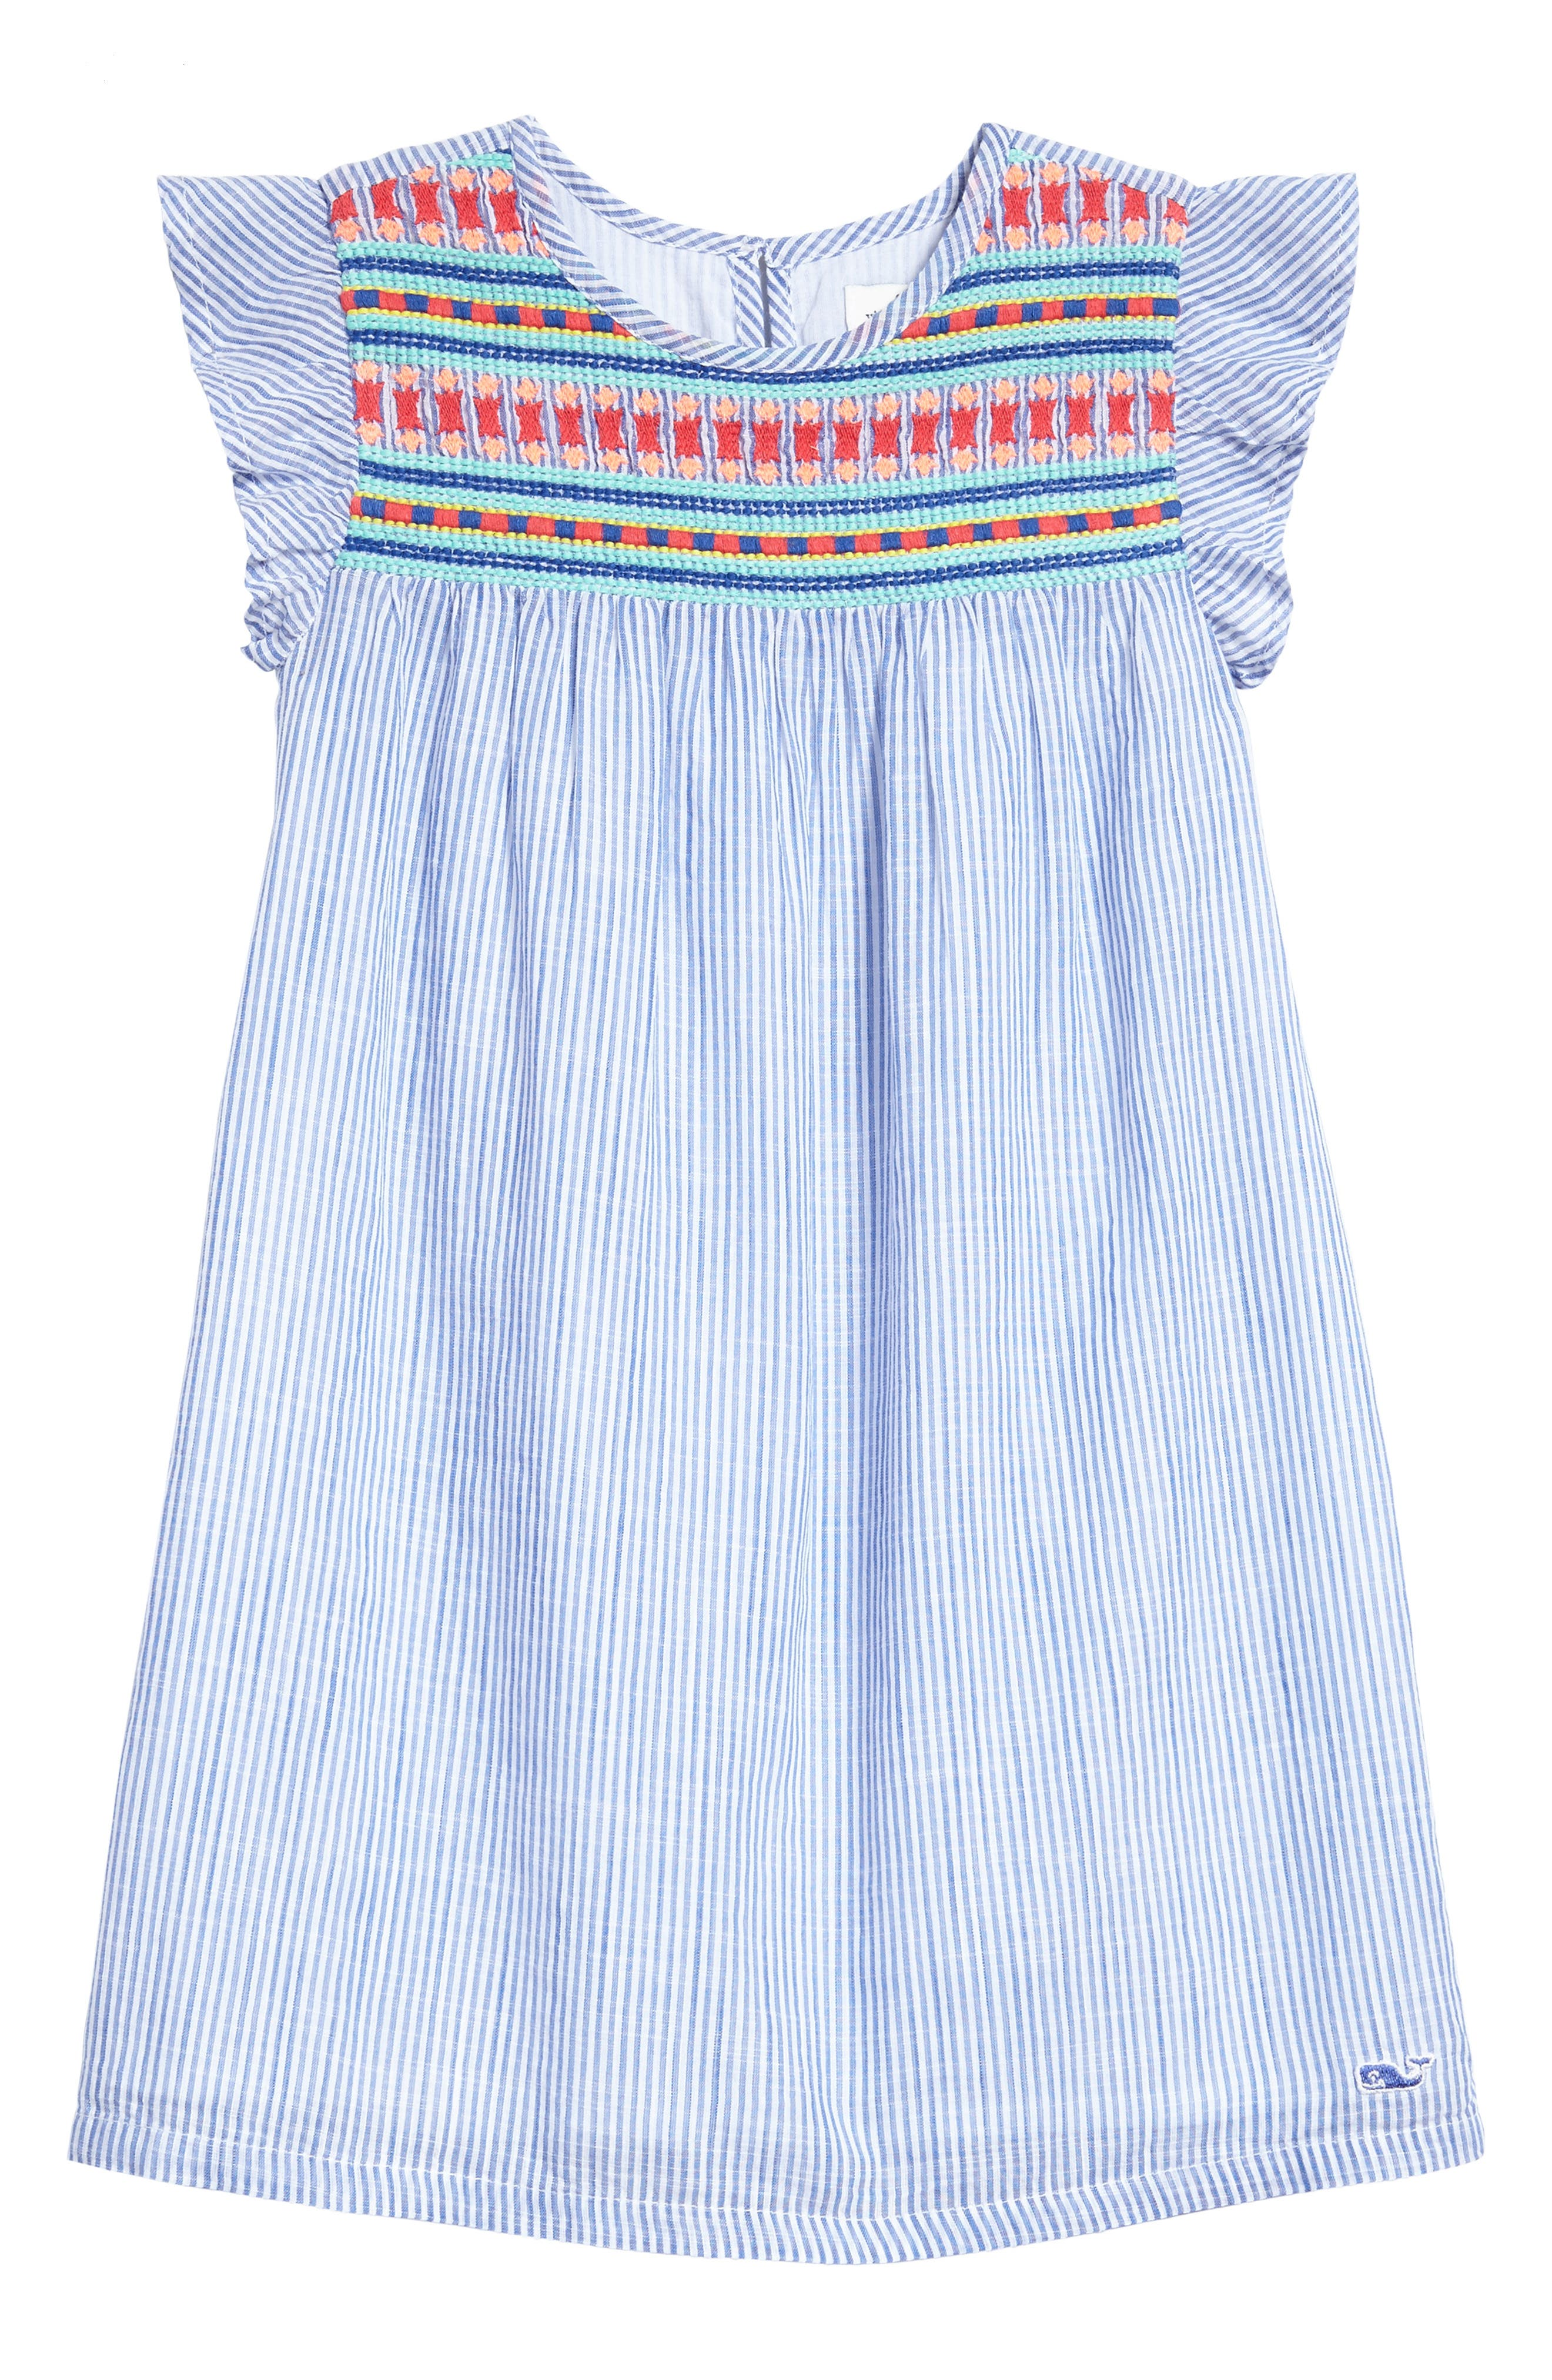 Embroidered Flutter Dress,                             Main thumbnail 1, color,                             400